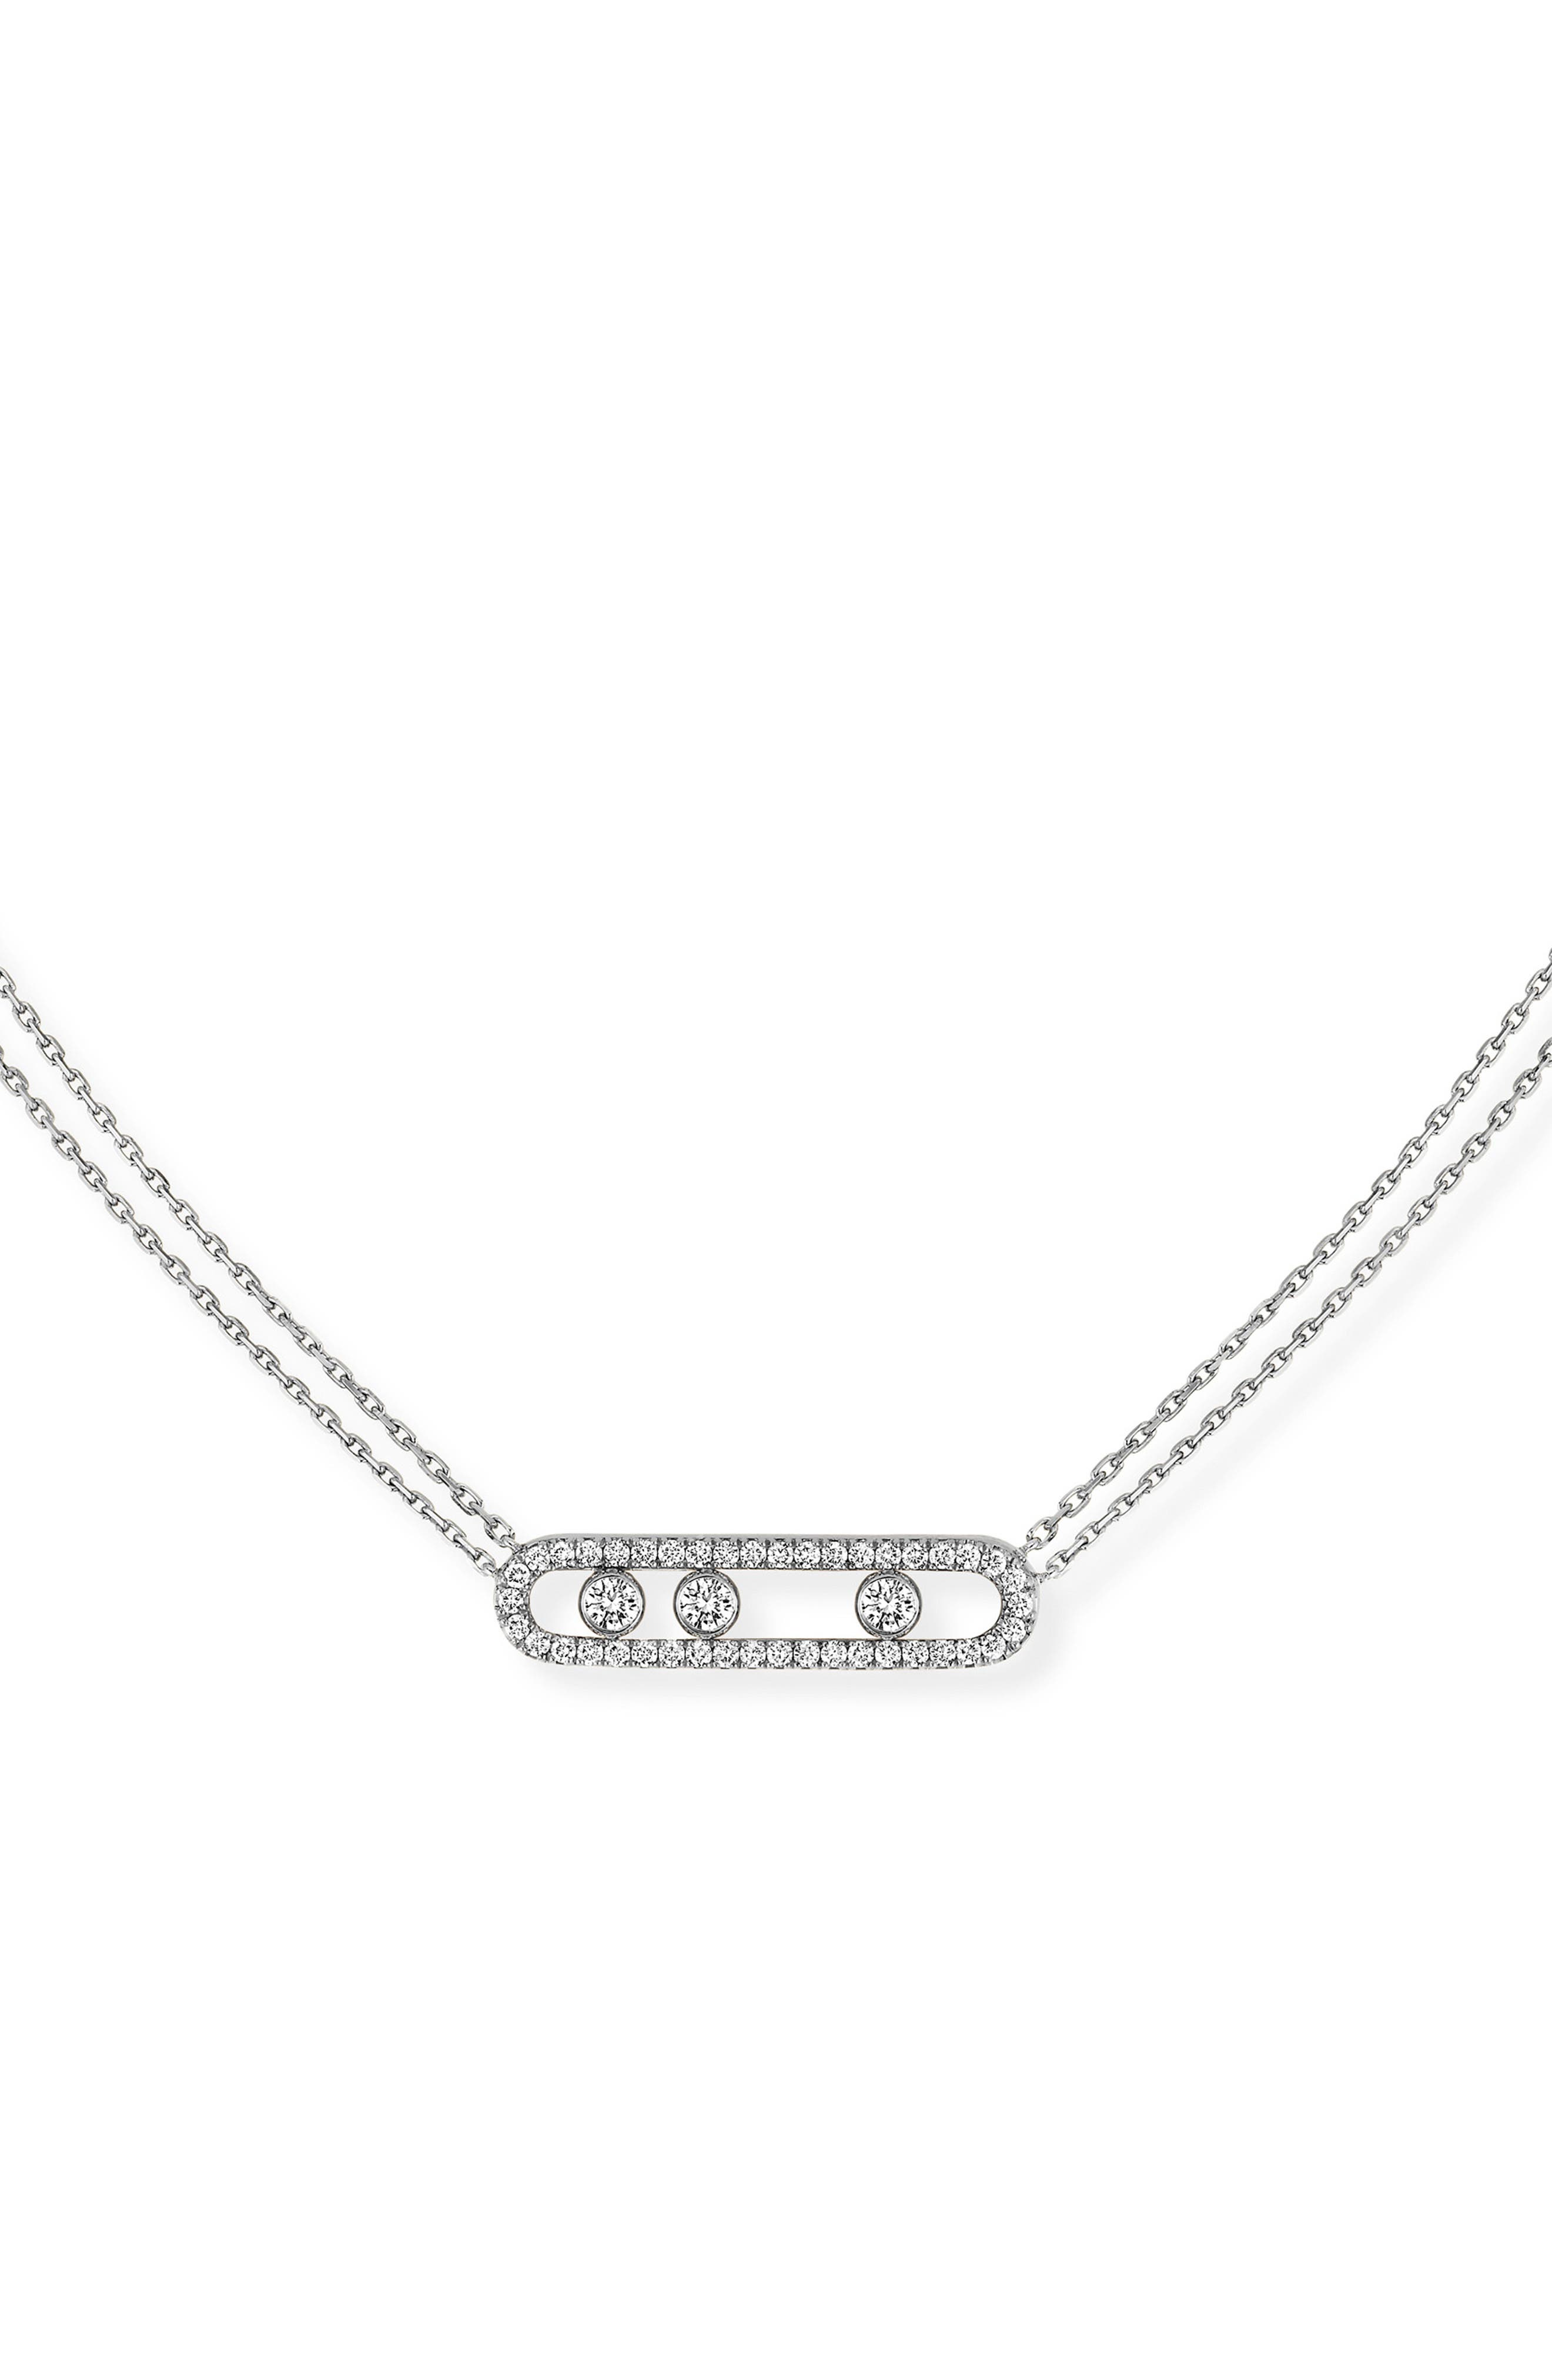 MESSIKA Move Pave Diamond Pendant Necklace in White Gold